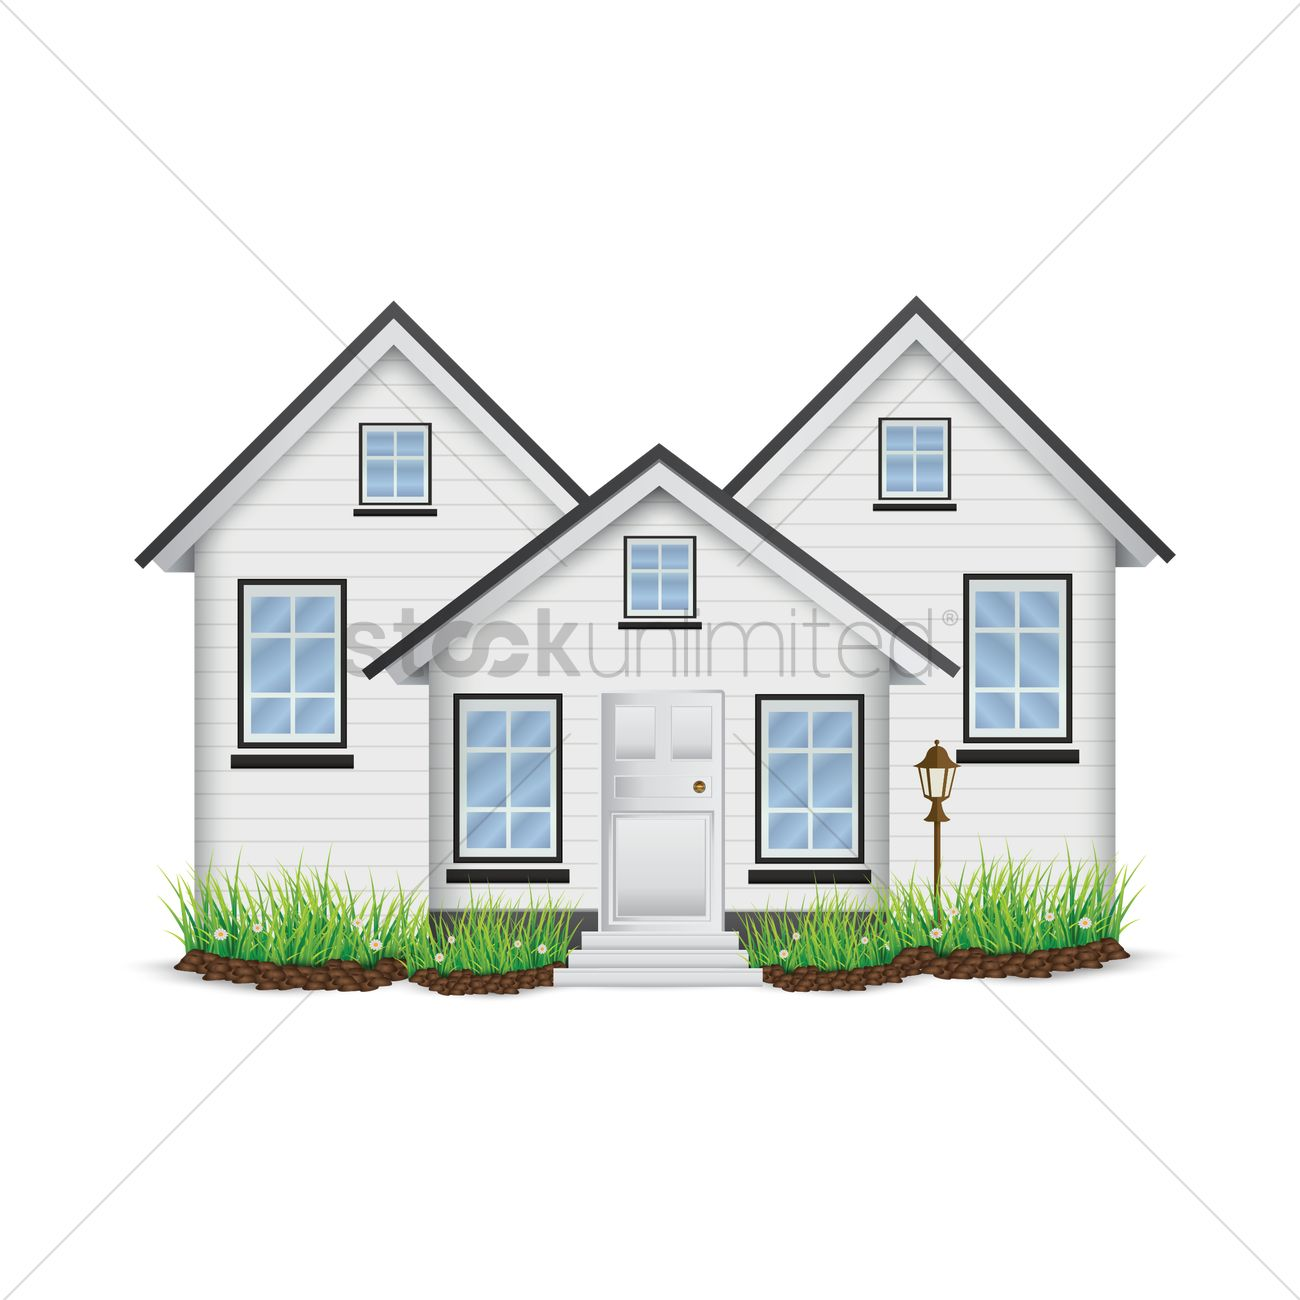 Fancy house vector graphic